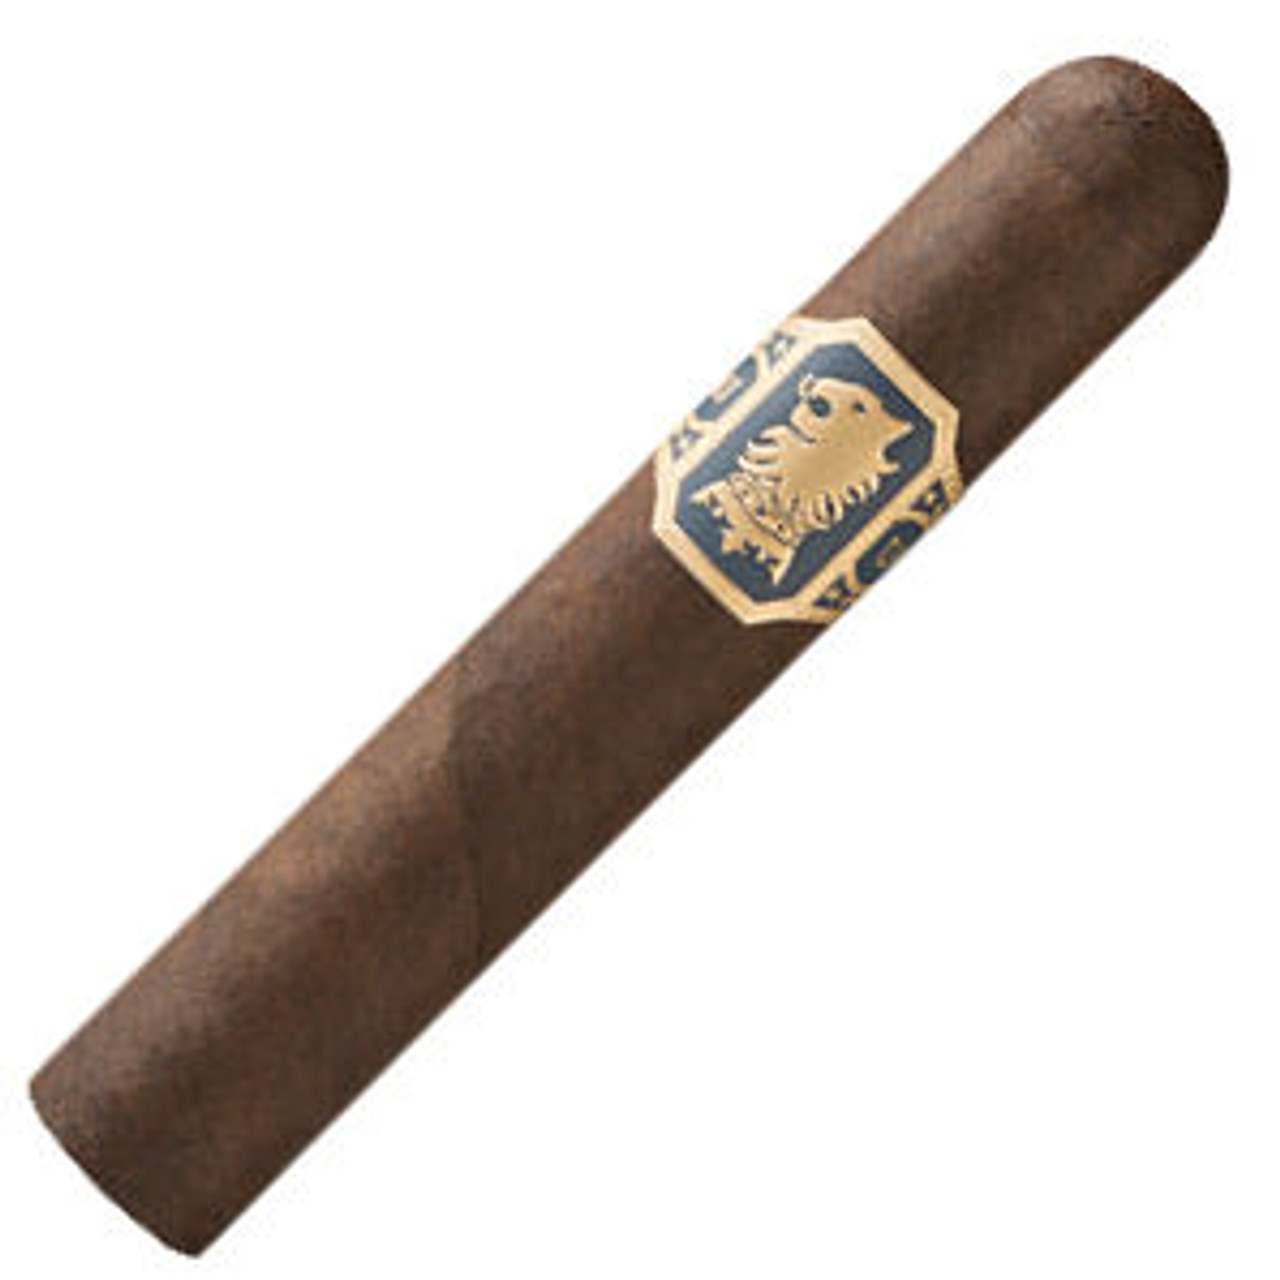 Undercrown Robusto Cigars - 5 x 54 (Pack of 5)